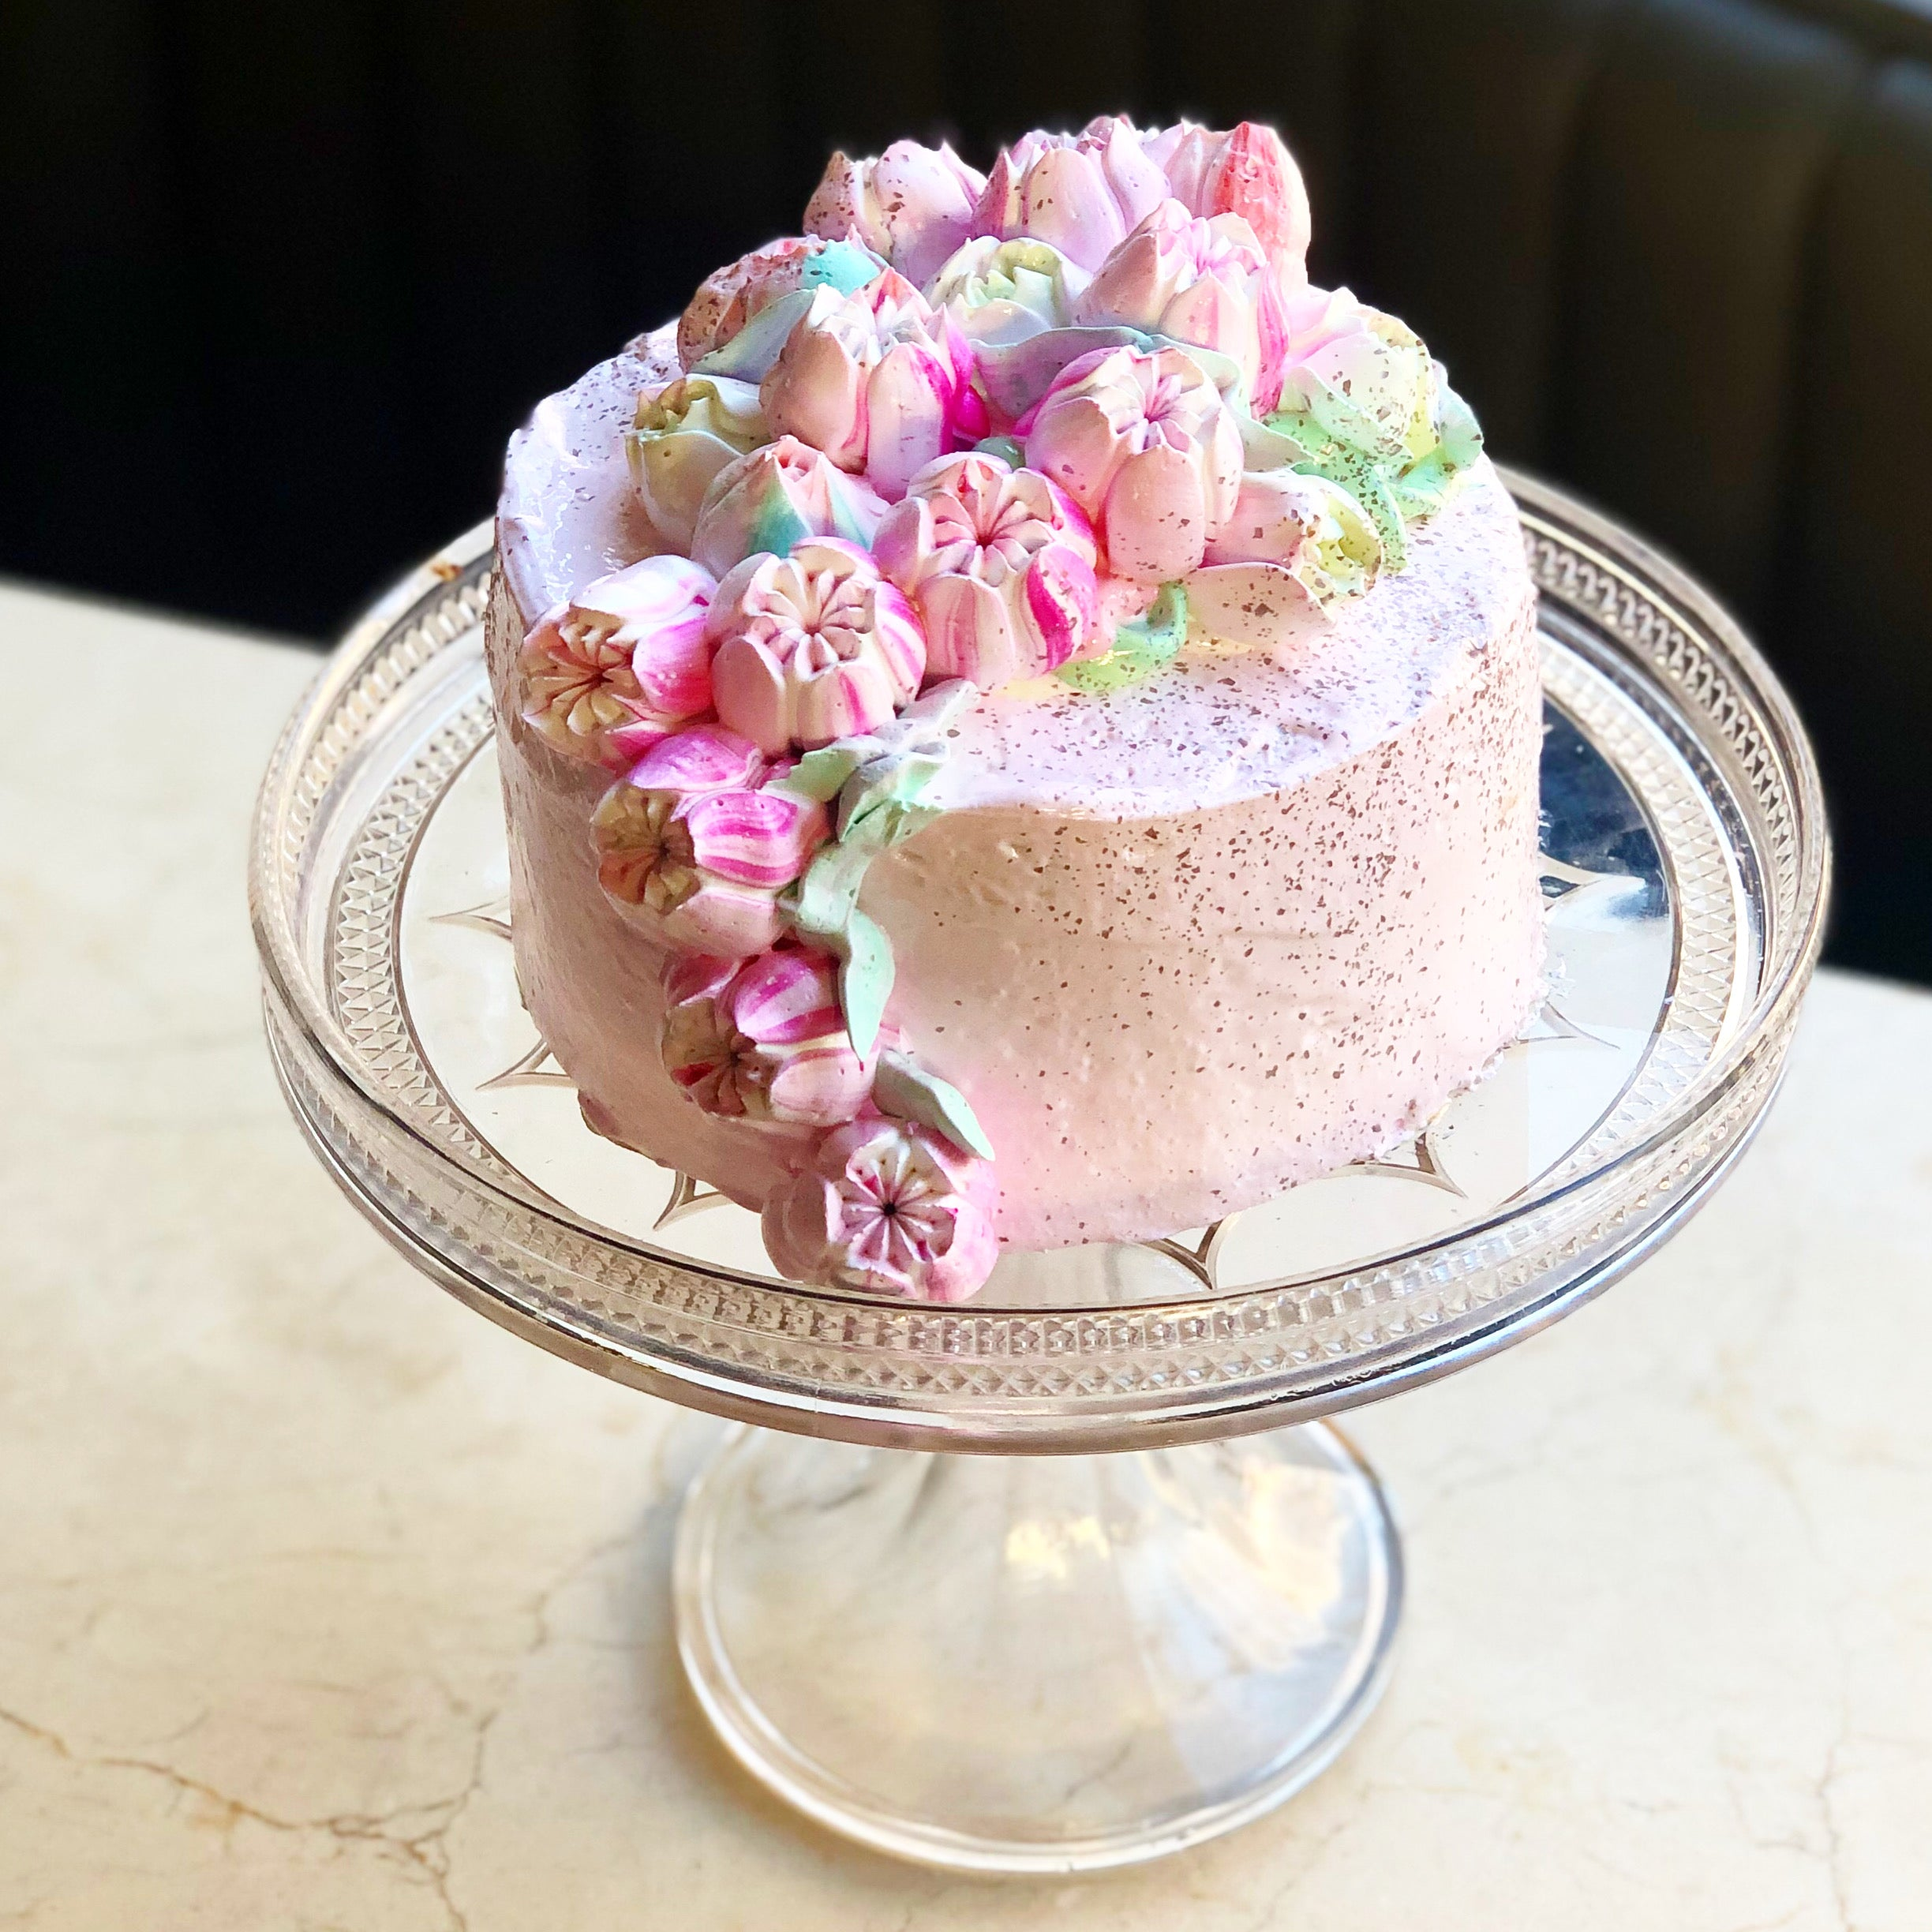 Mother's Day cake - 48 hours preorder only